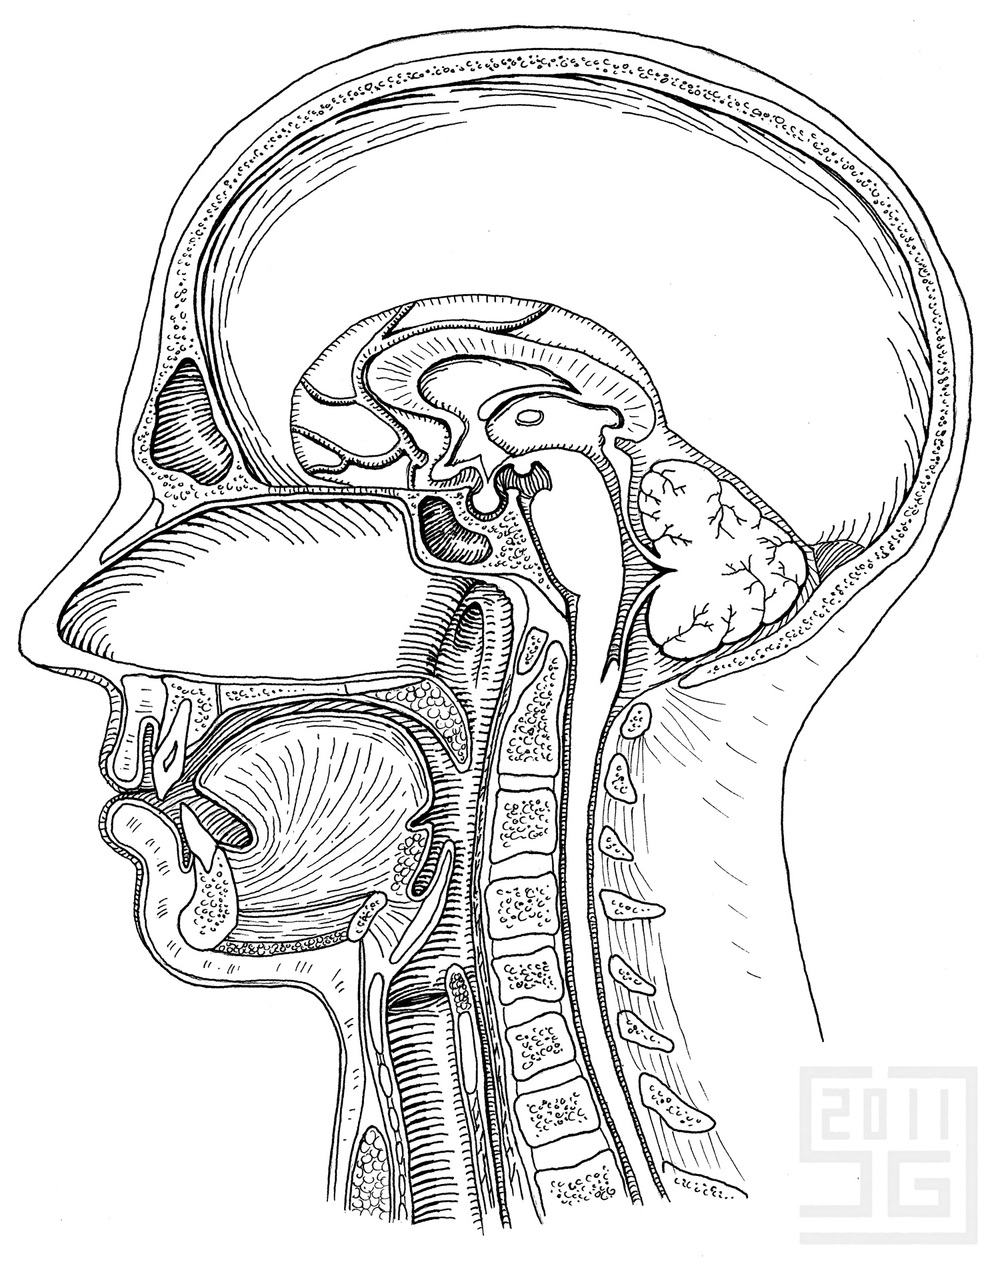 Sagittal Section of Head